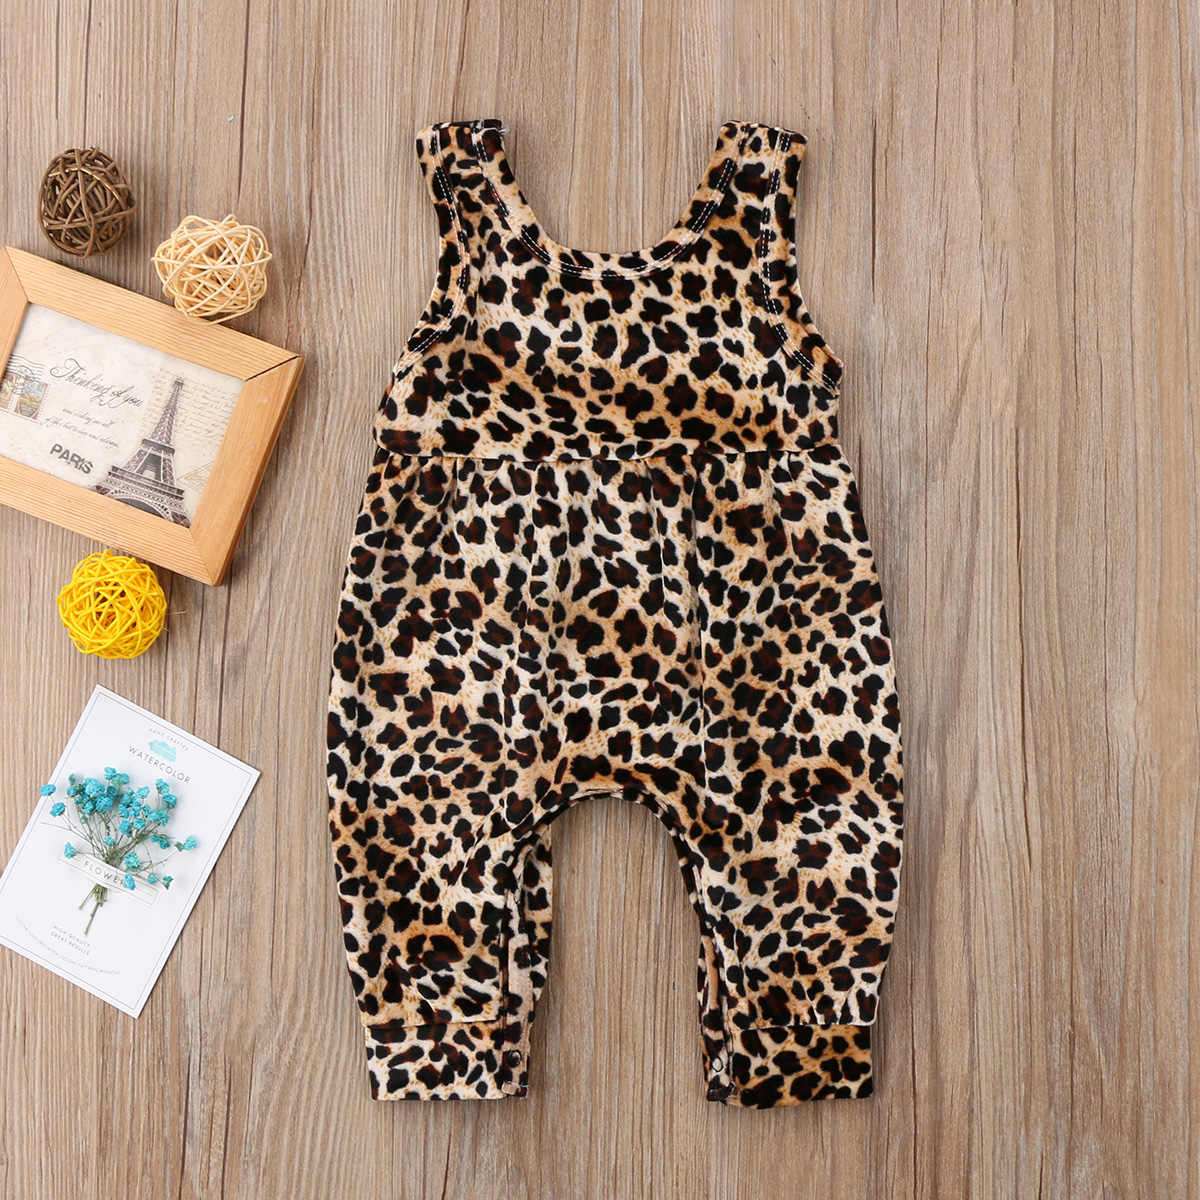 bb0cb1d3c Detail Feedback Questions about 2018 Brand New Cute Newborn Toddler ...